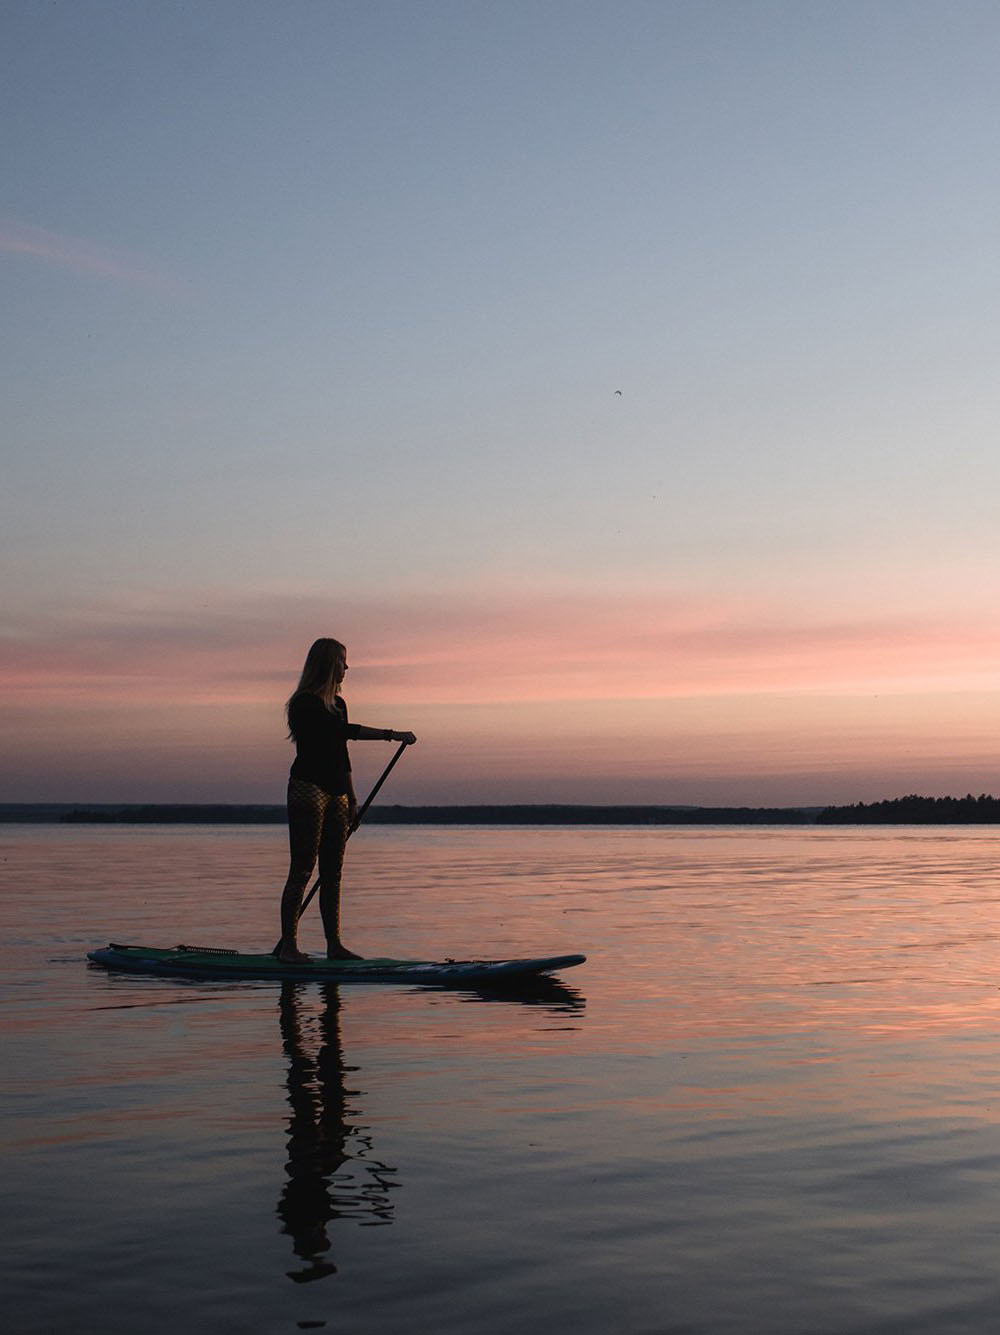 SUP Yoga - Sarovara Yoga Bobcaygeon Ontario - Sunset SUP Photography